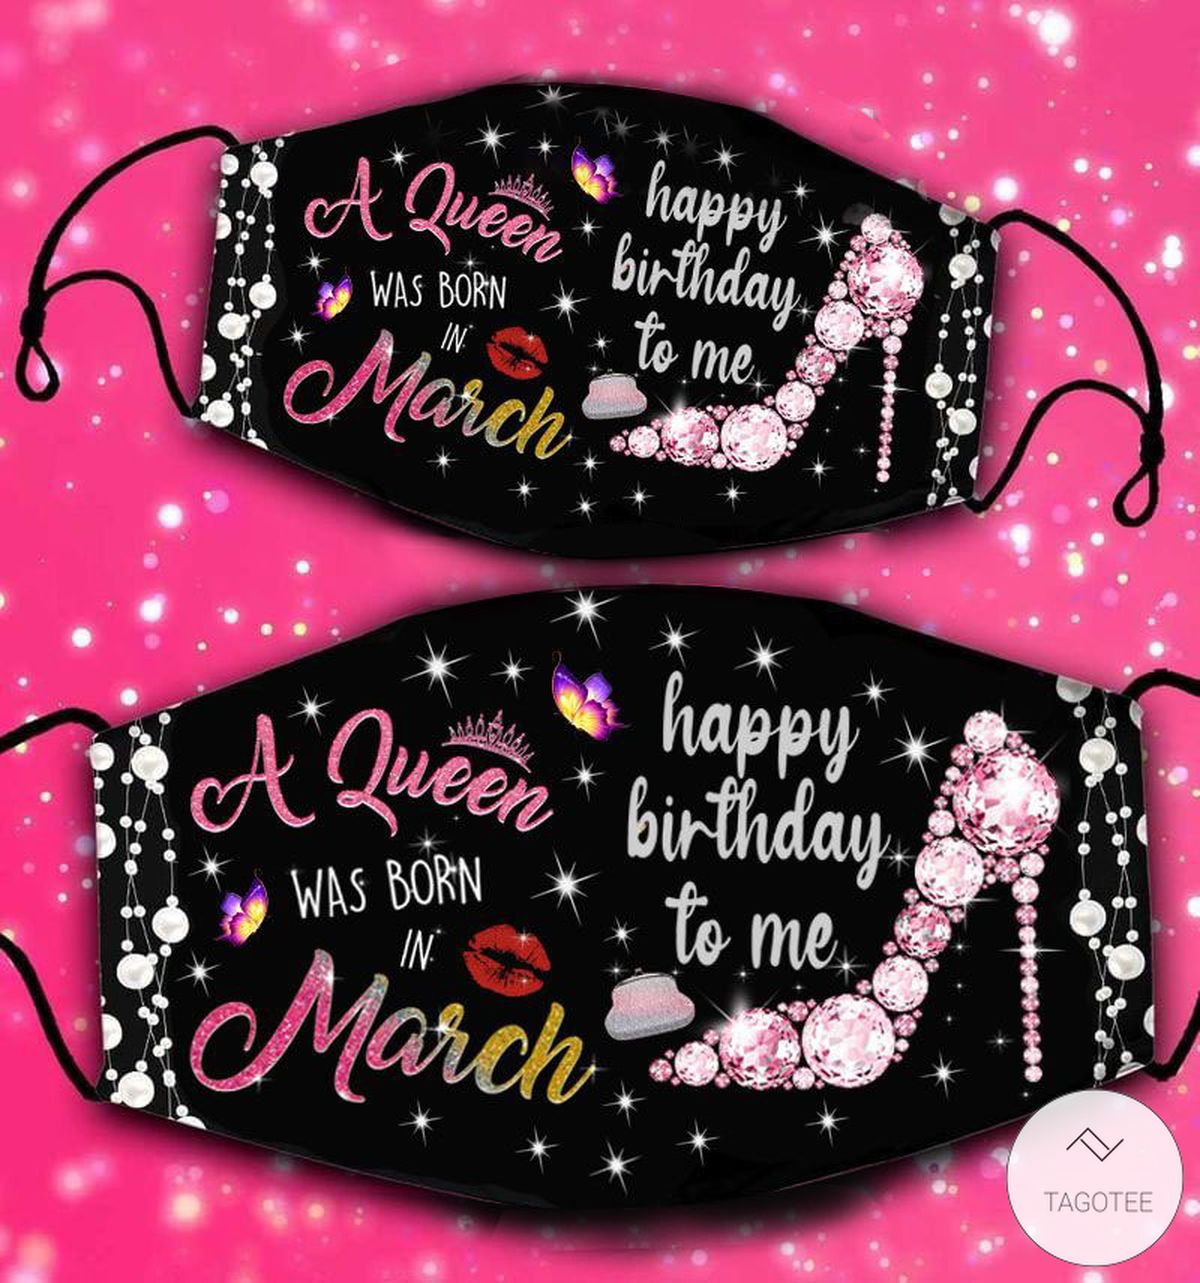 A-Queen-Was-Born-In-March-Happy-Birthday-To-Me-Face-Mask